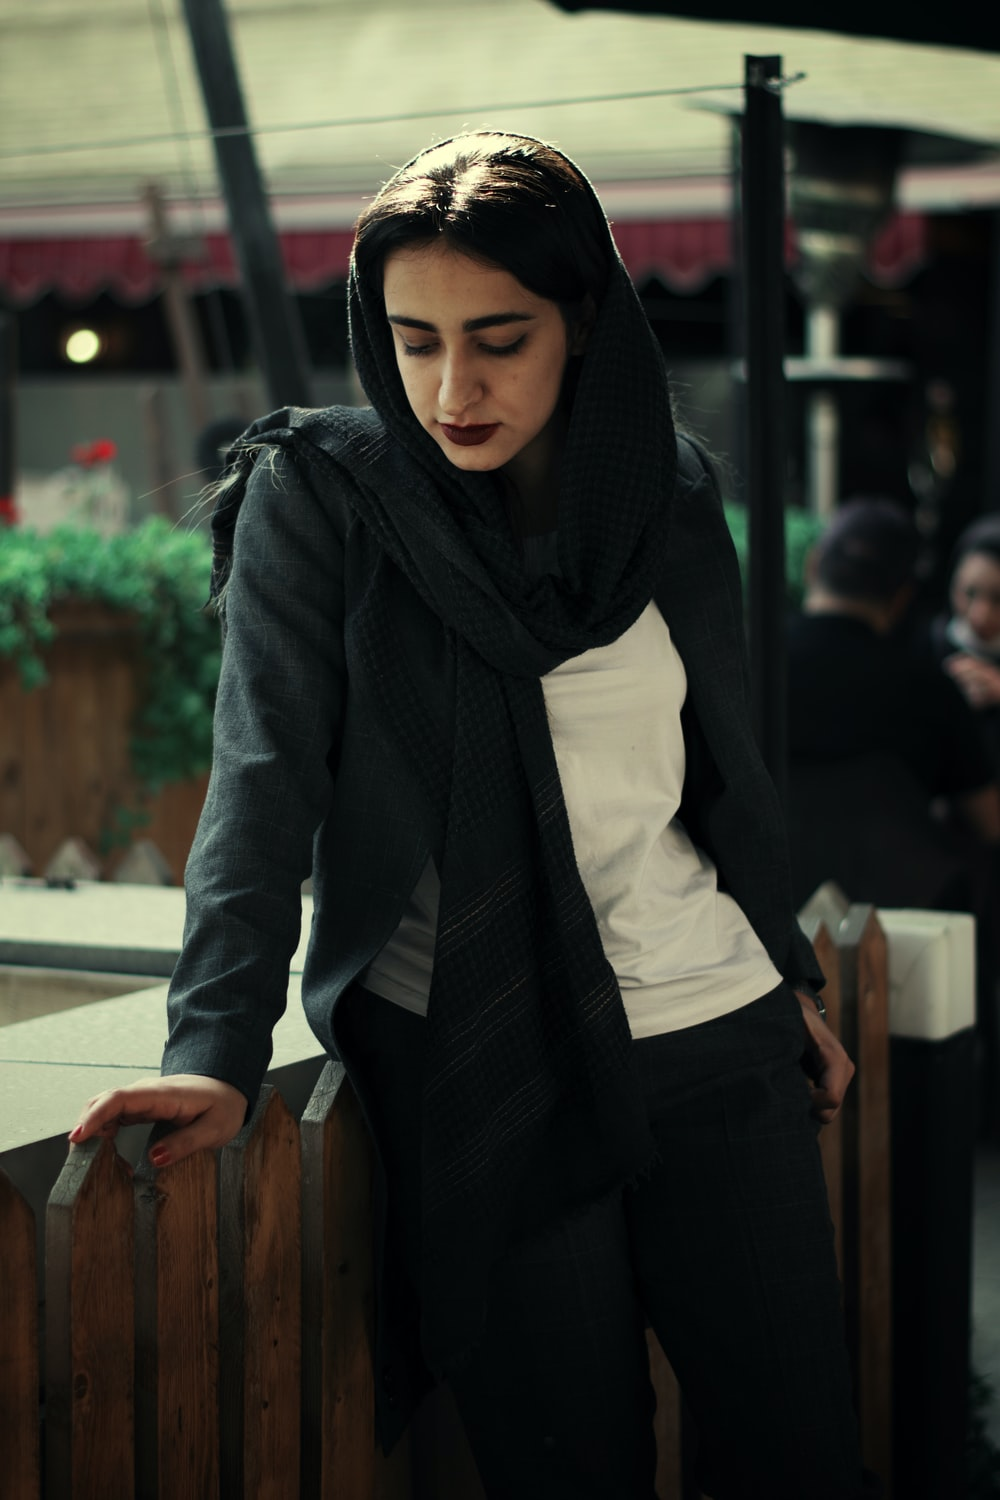 woman in black hijab and white long sleeve shirt